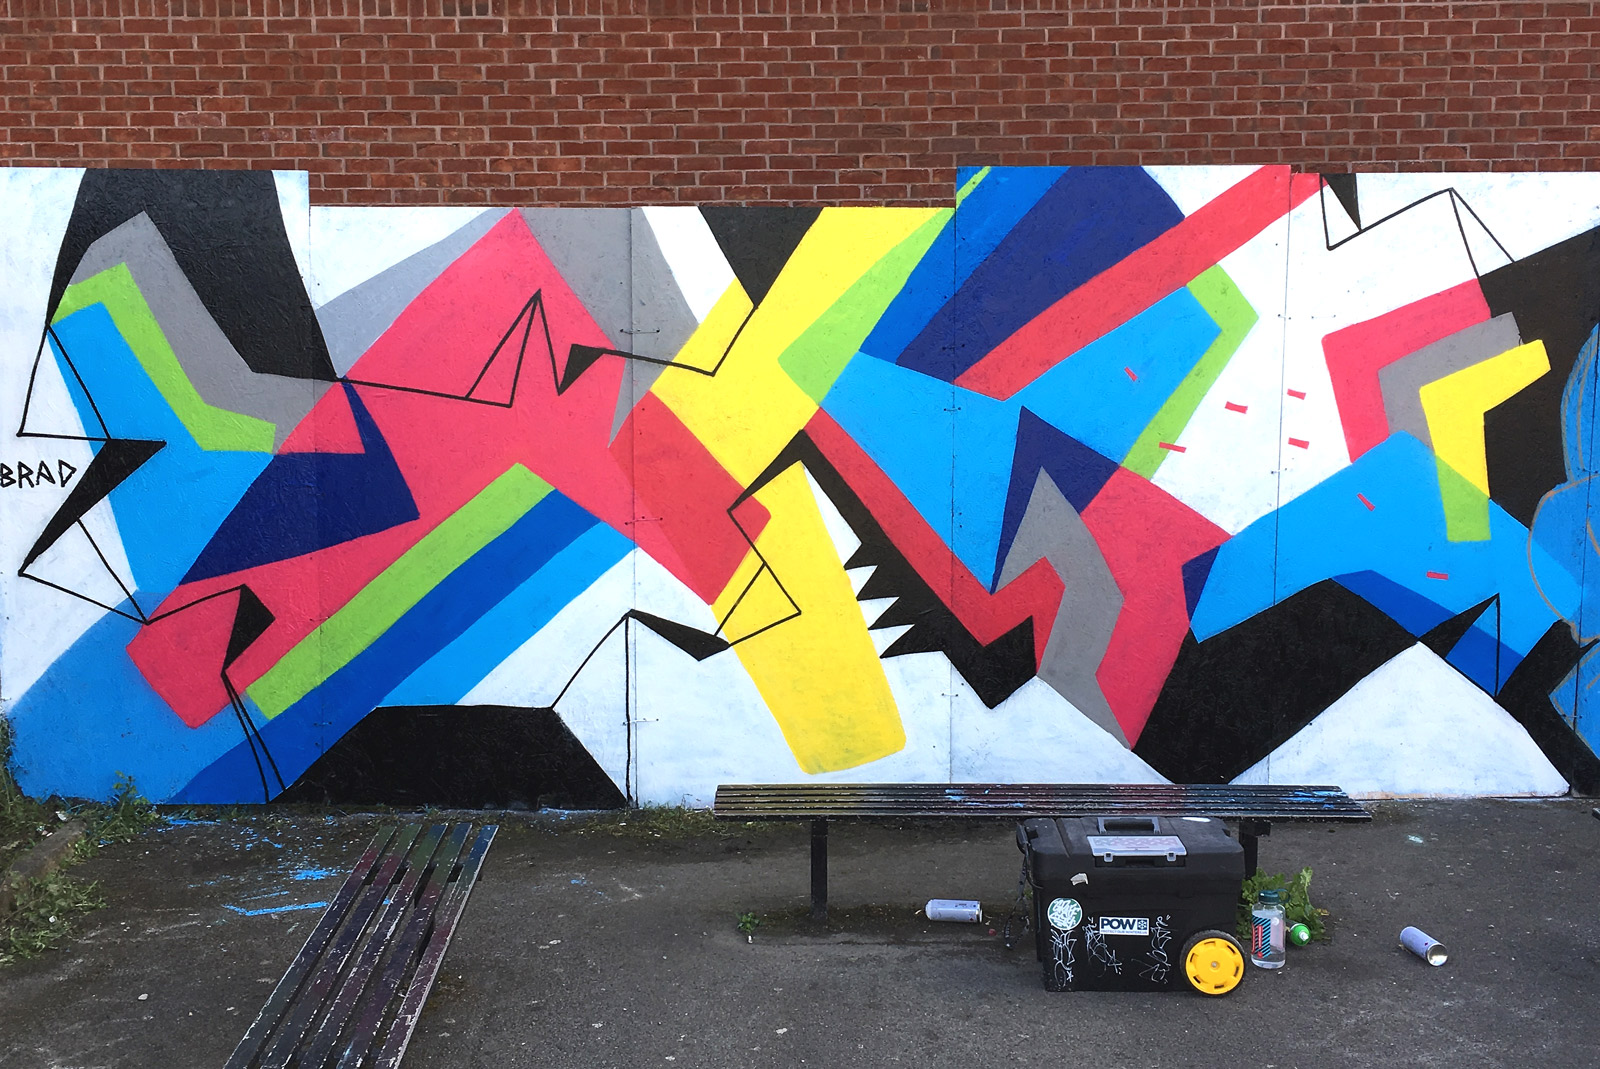 styles-of-somerset-glastonbury-graffiti-paint-jam